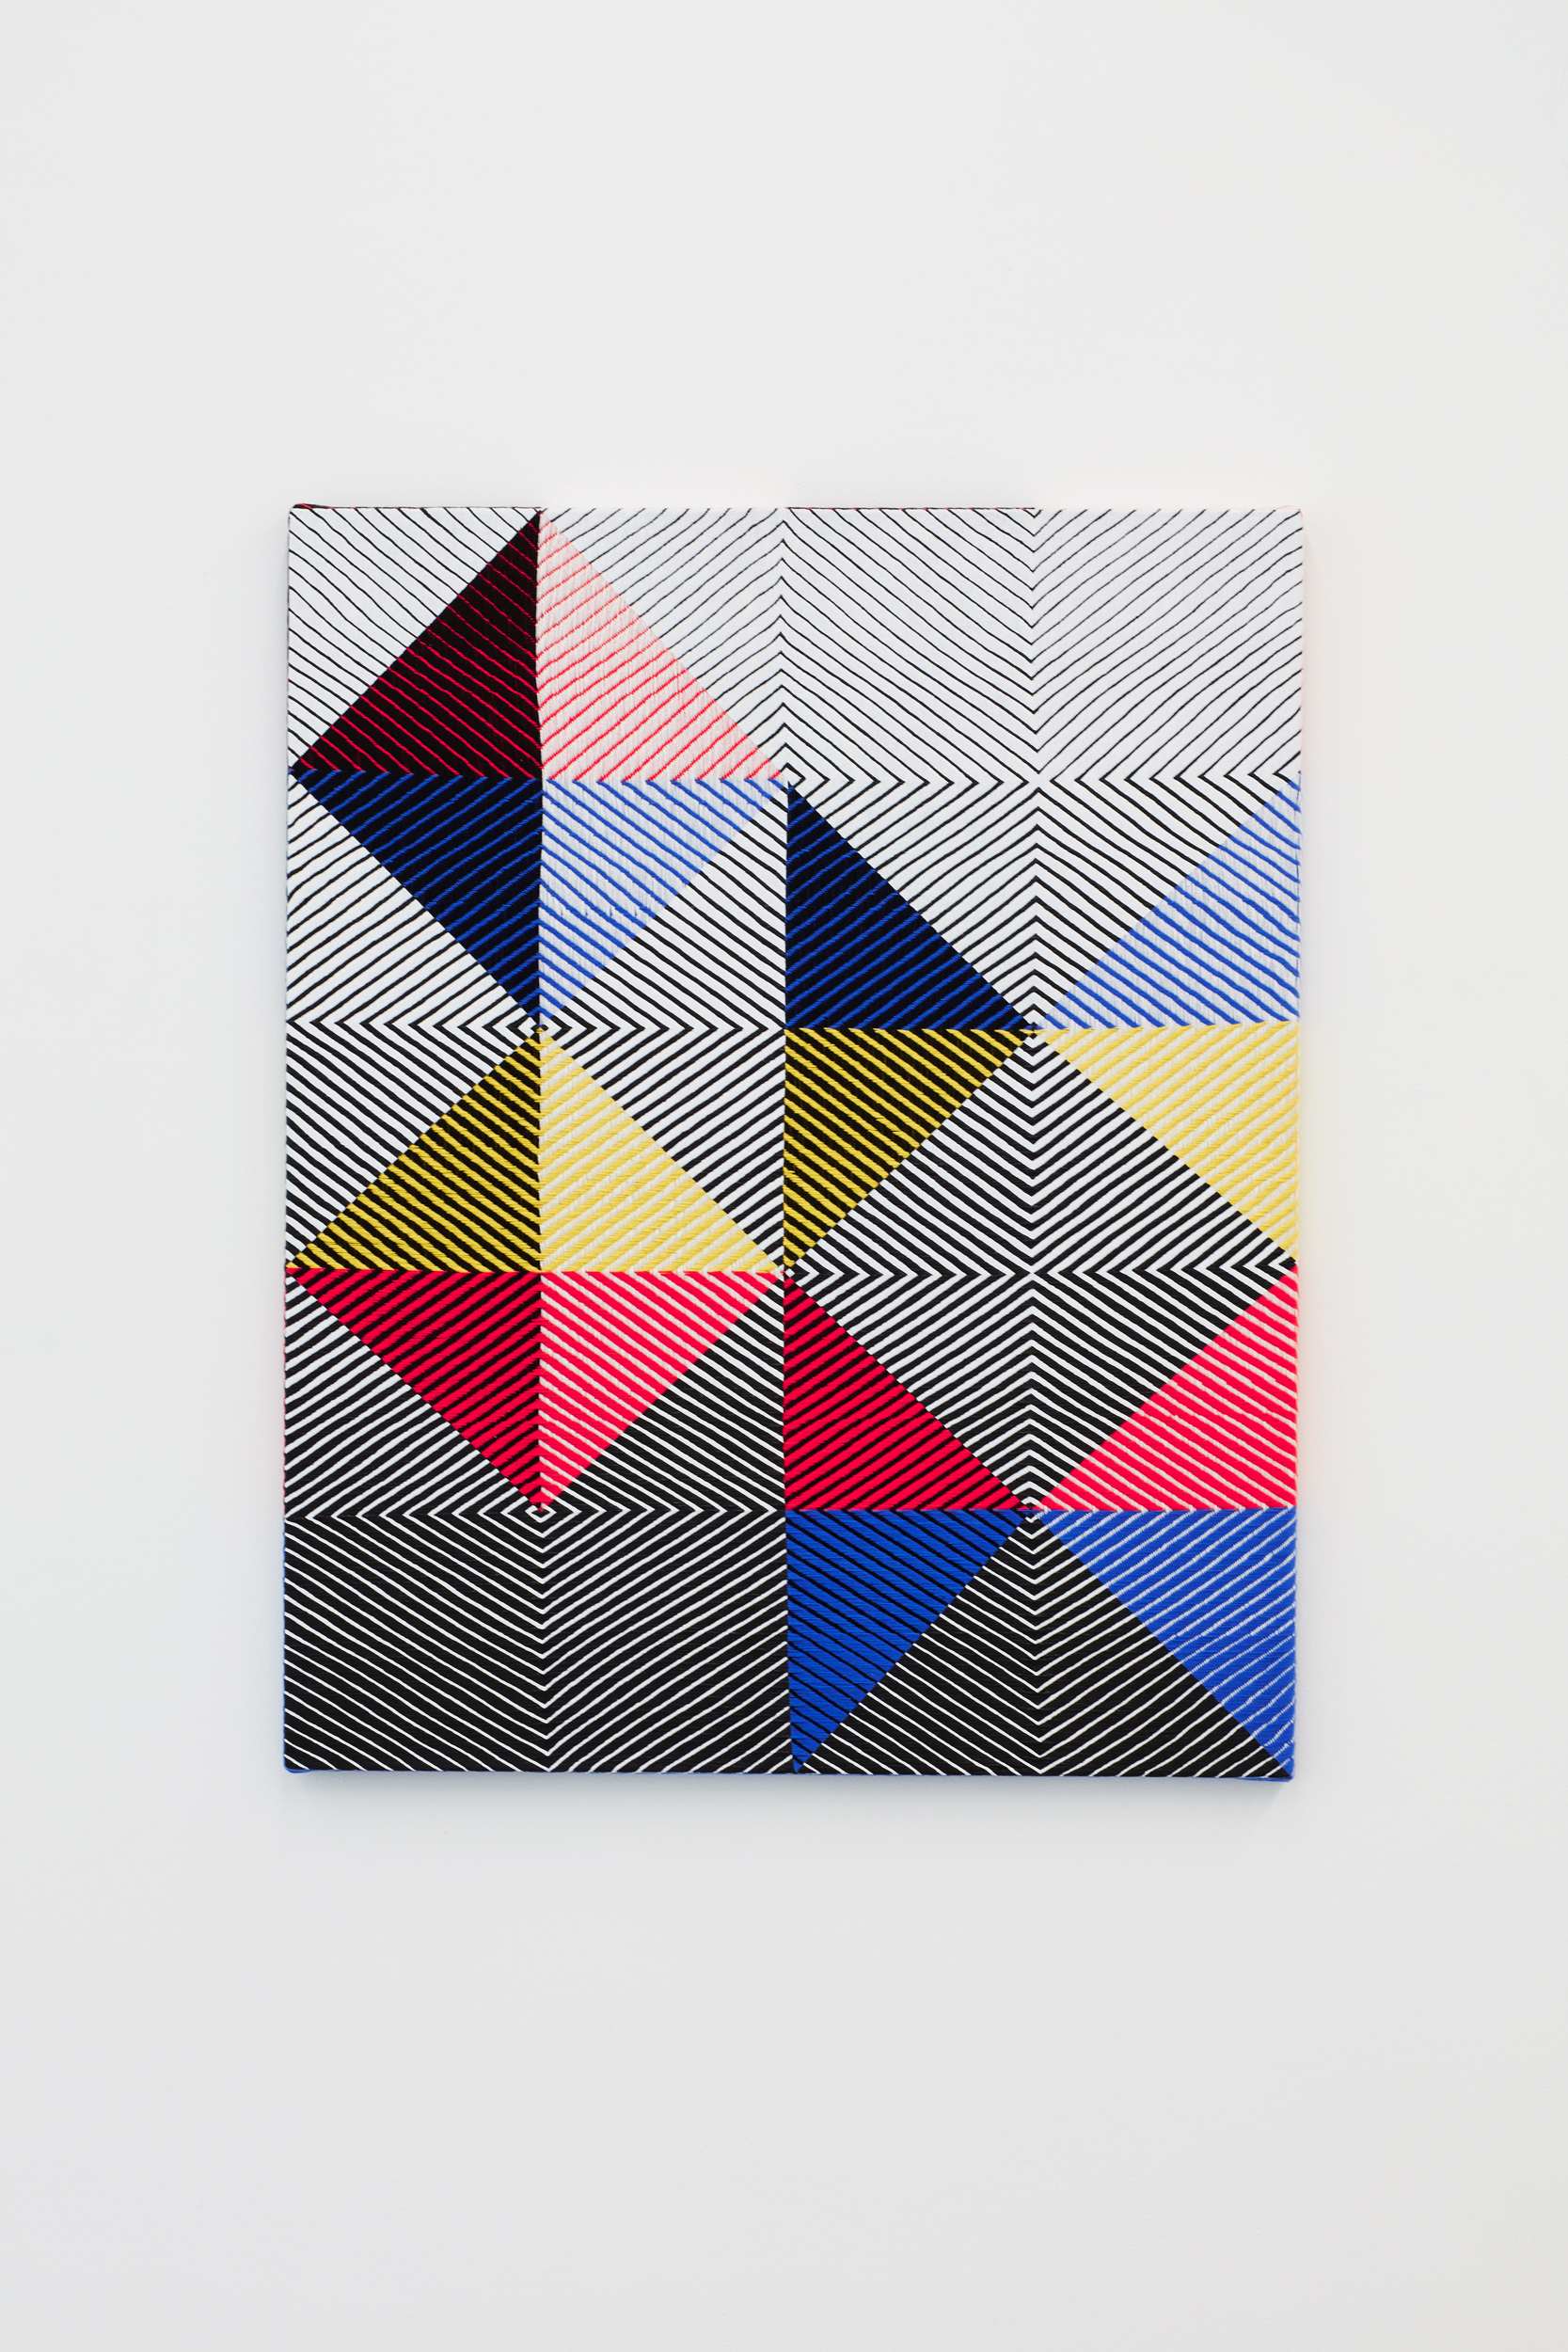 Samantha Bittman, Untitled, 2017, acrylic on hand-woven textile, 40×32 inc, inv. n. 2017-013